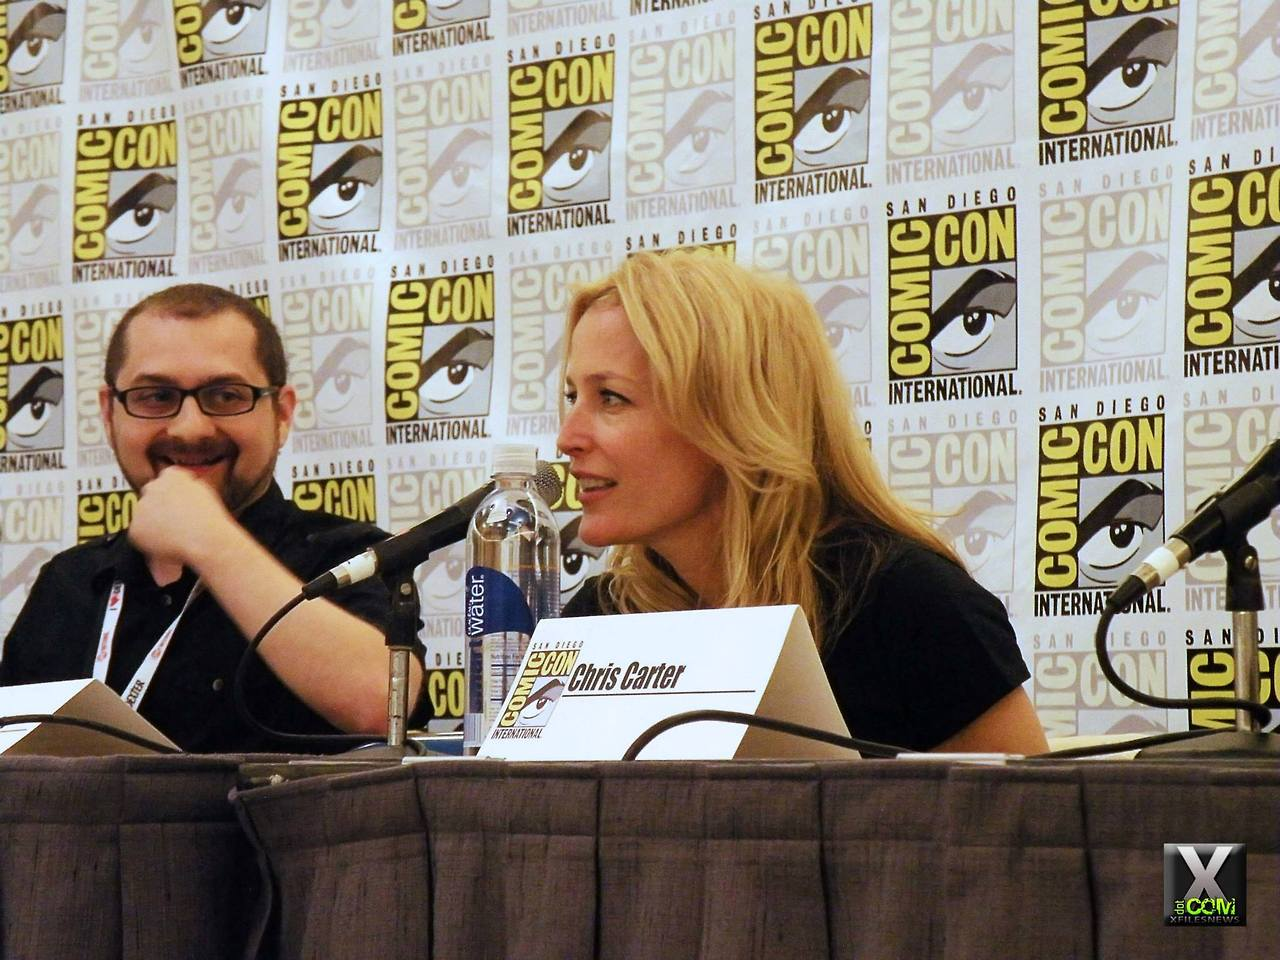 EGA San Diego Comic Con 2013 Panel De Los Comics The X